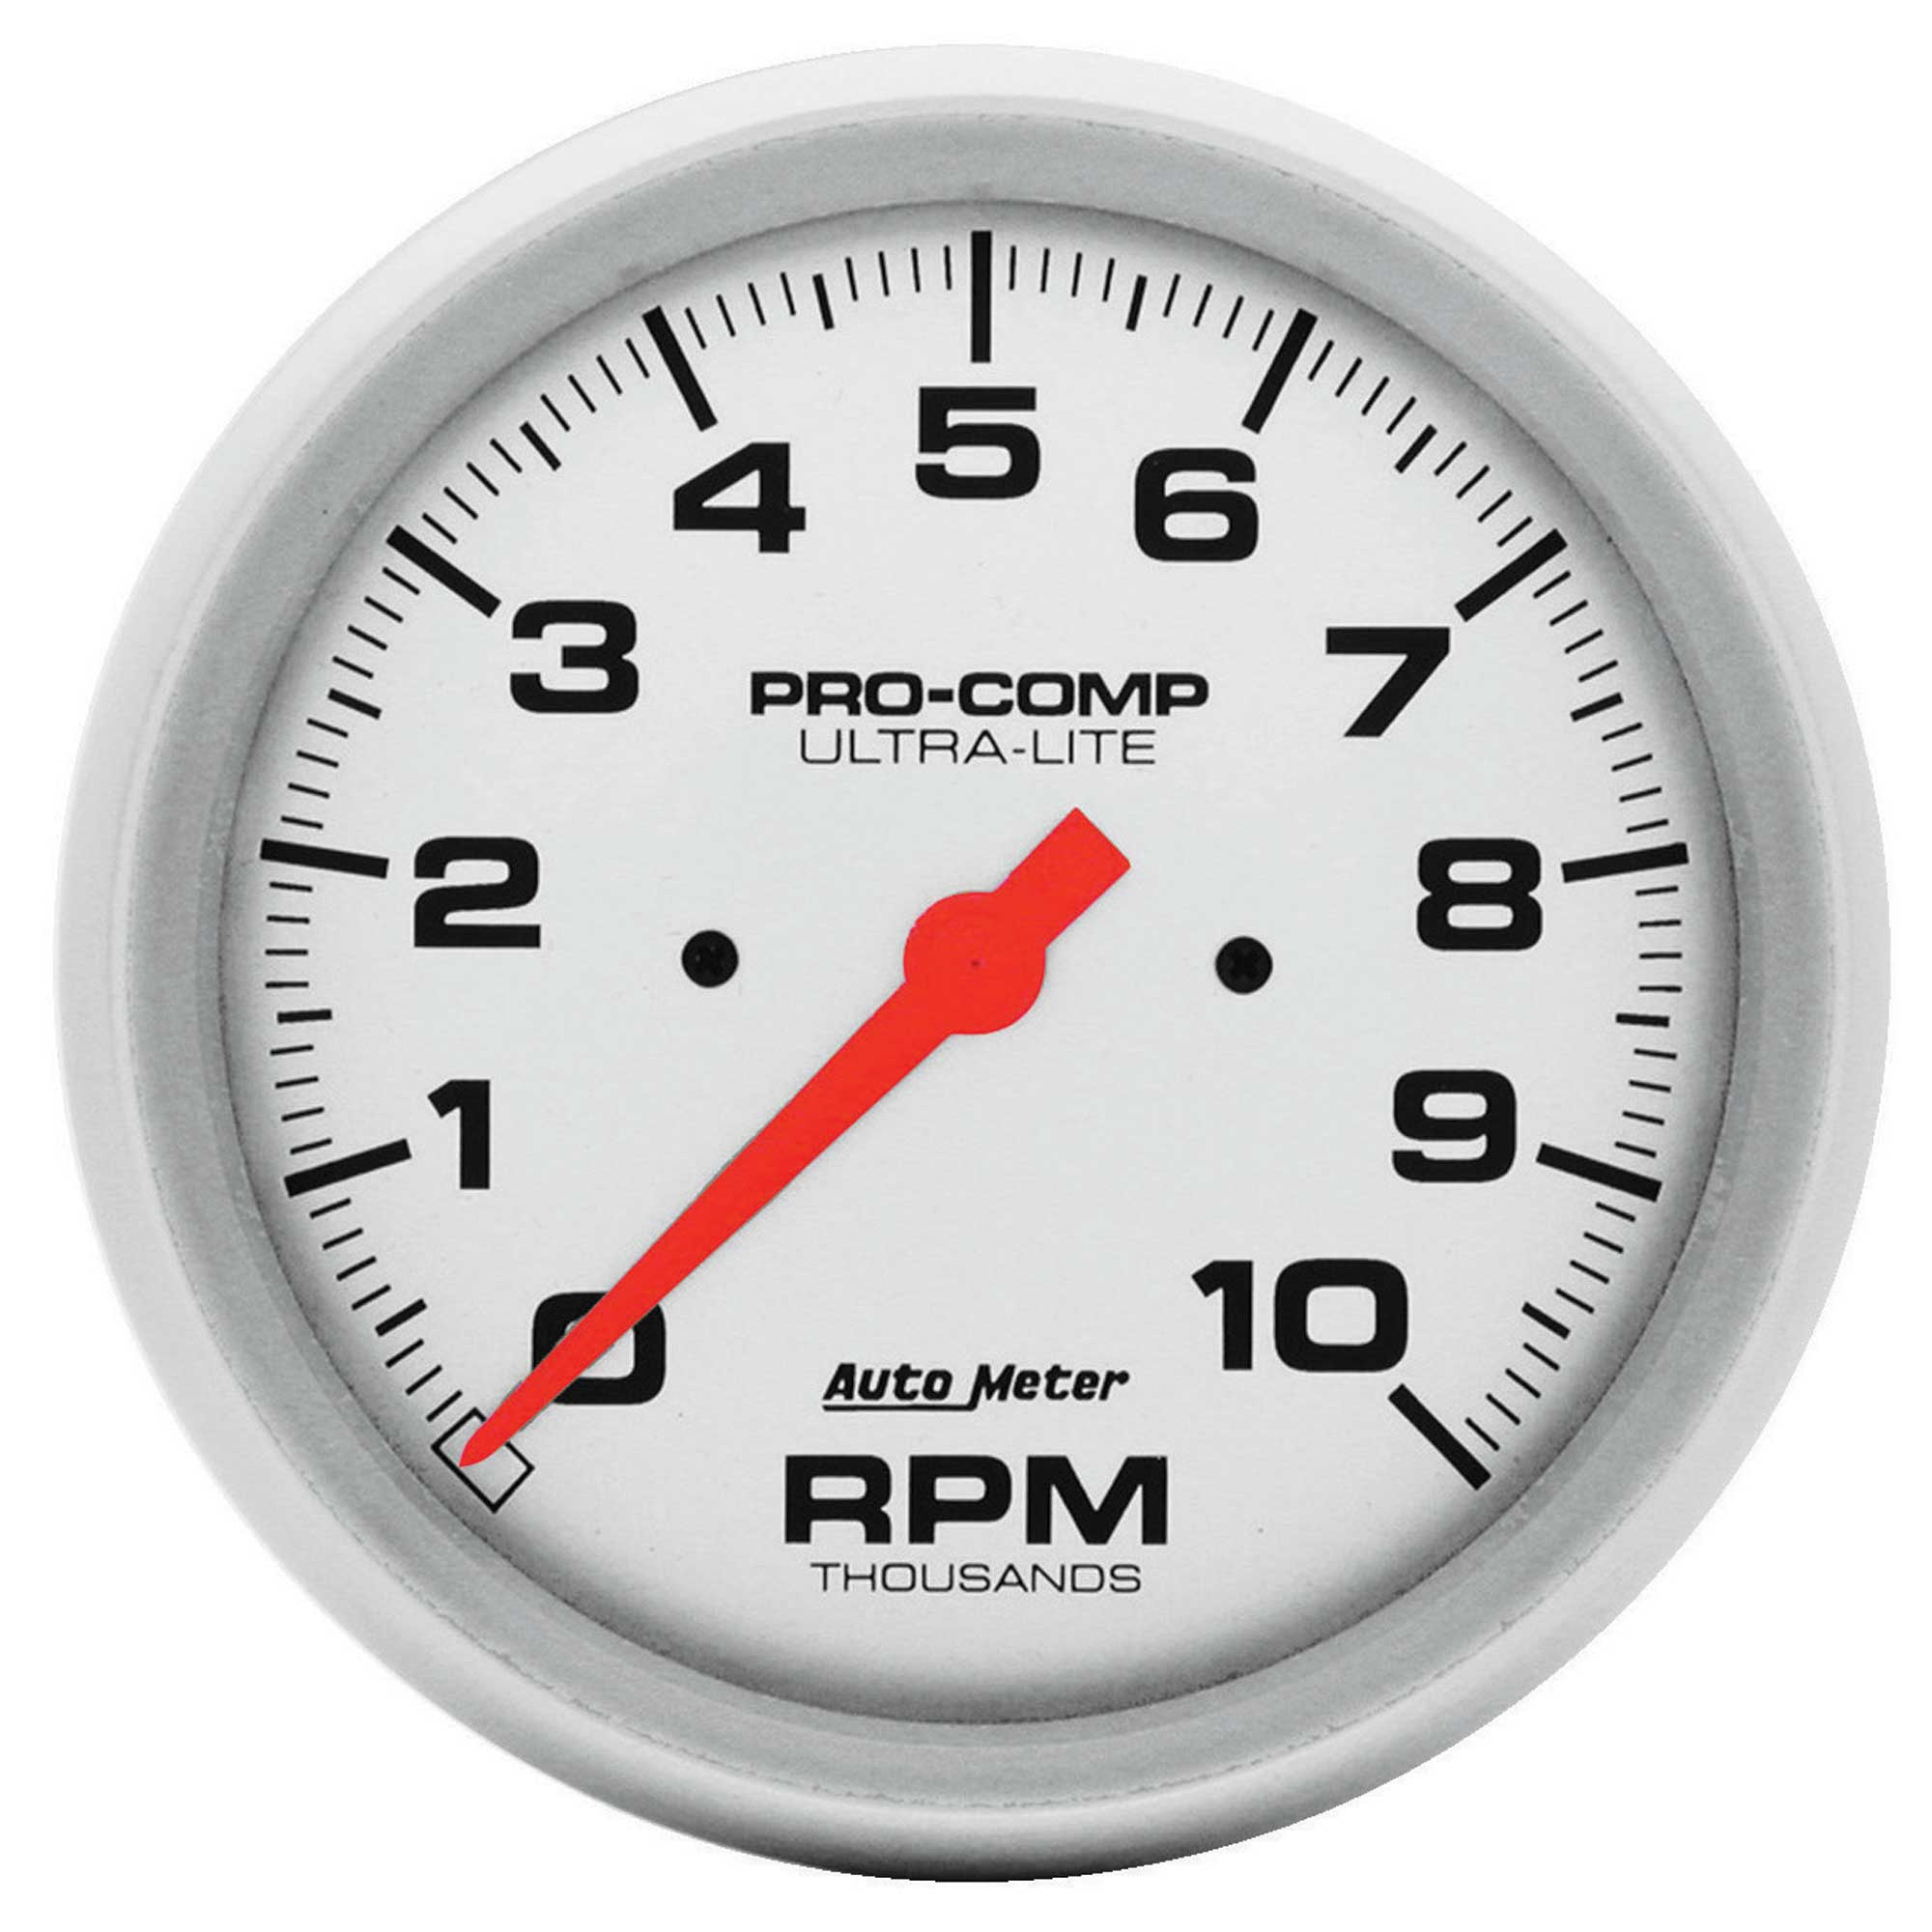 Details about Auto Meter 5 Inch (127mm) Dash Pro Comp Tachometer - on